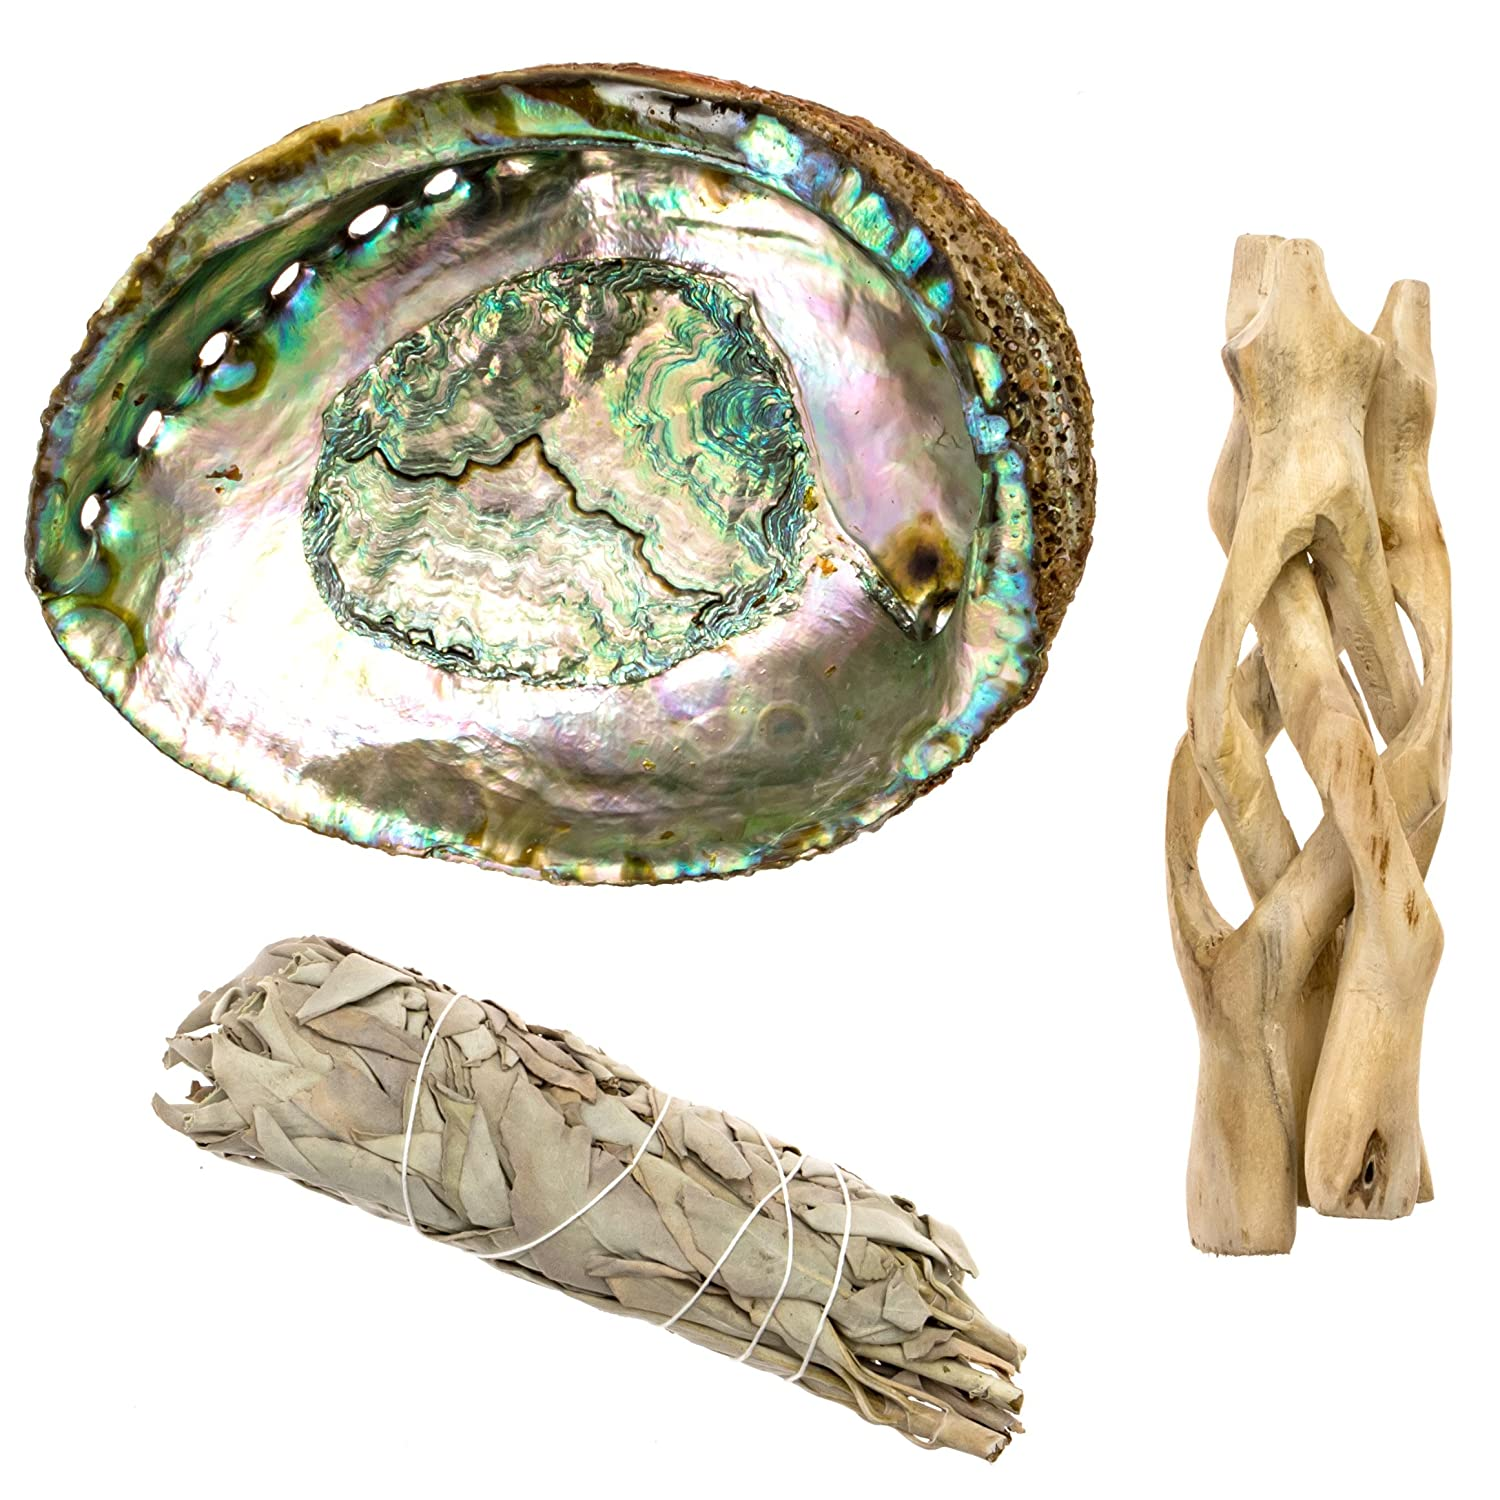 Premium Bundle with 6.5 Inch Abalone Shell, Natural Wooden Tripod Stand, and 1 Medium Sized California White Sage Smudge Sticks for Incense Burning, Home Fragrance, Energy Clearing, Yoga, Meditation